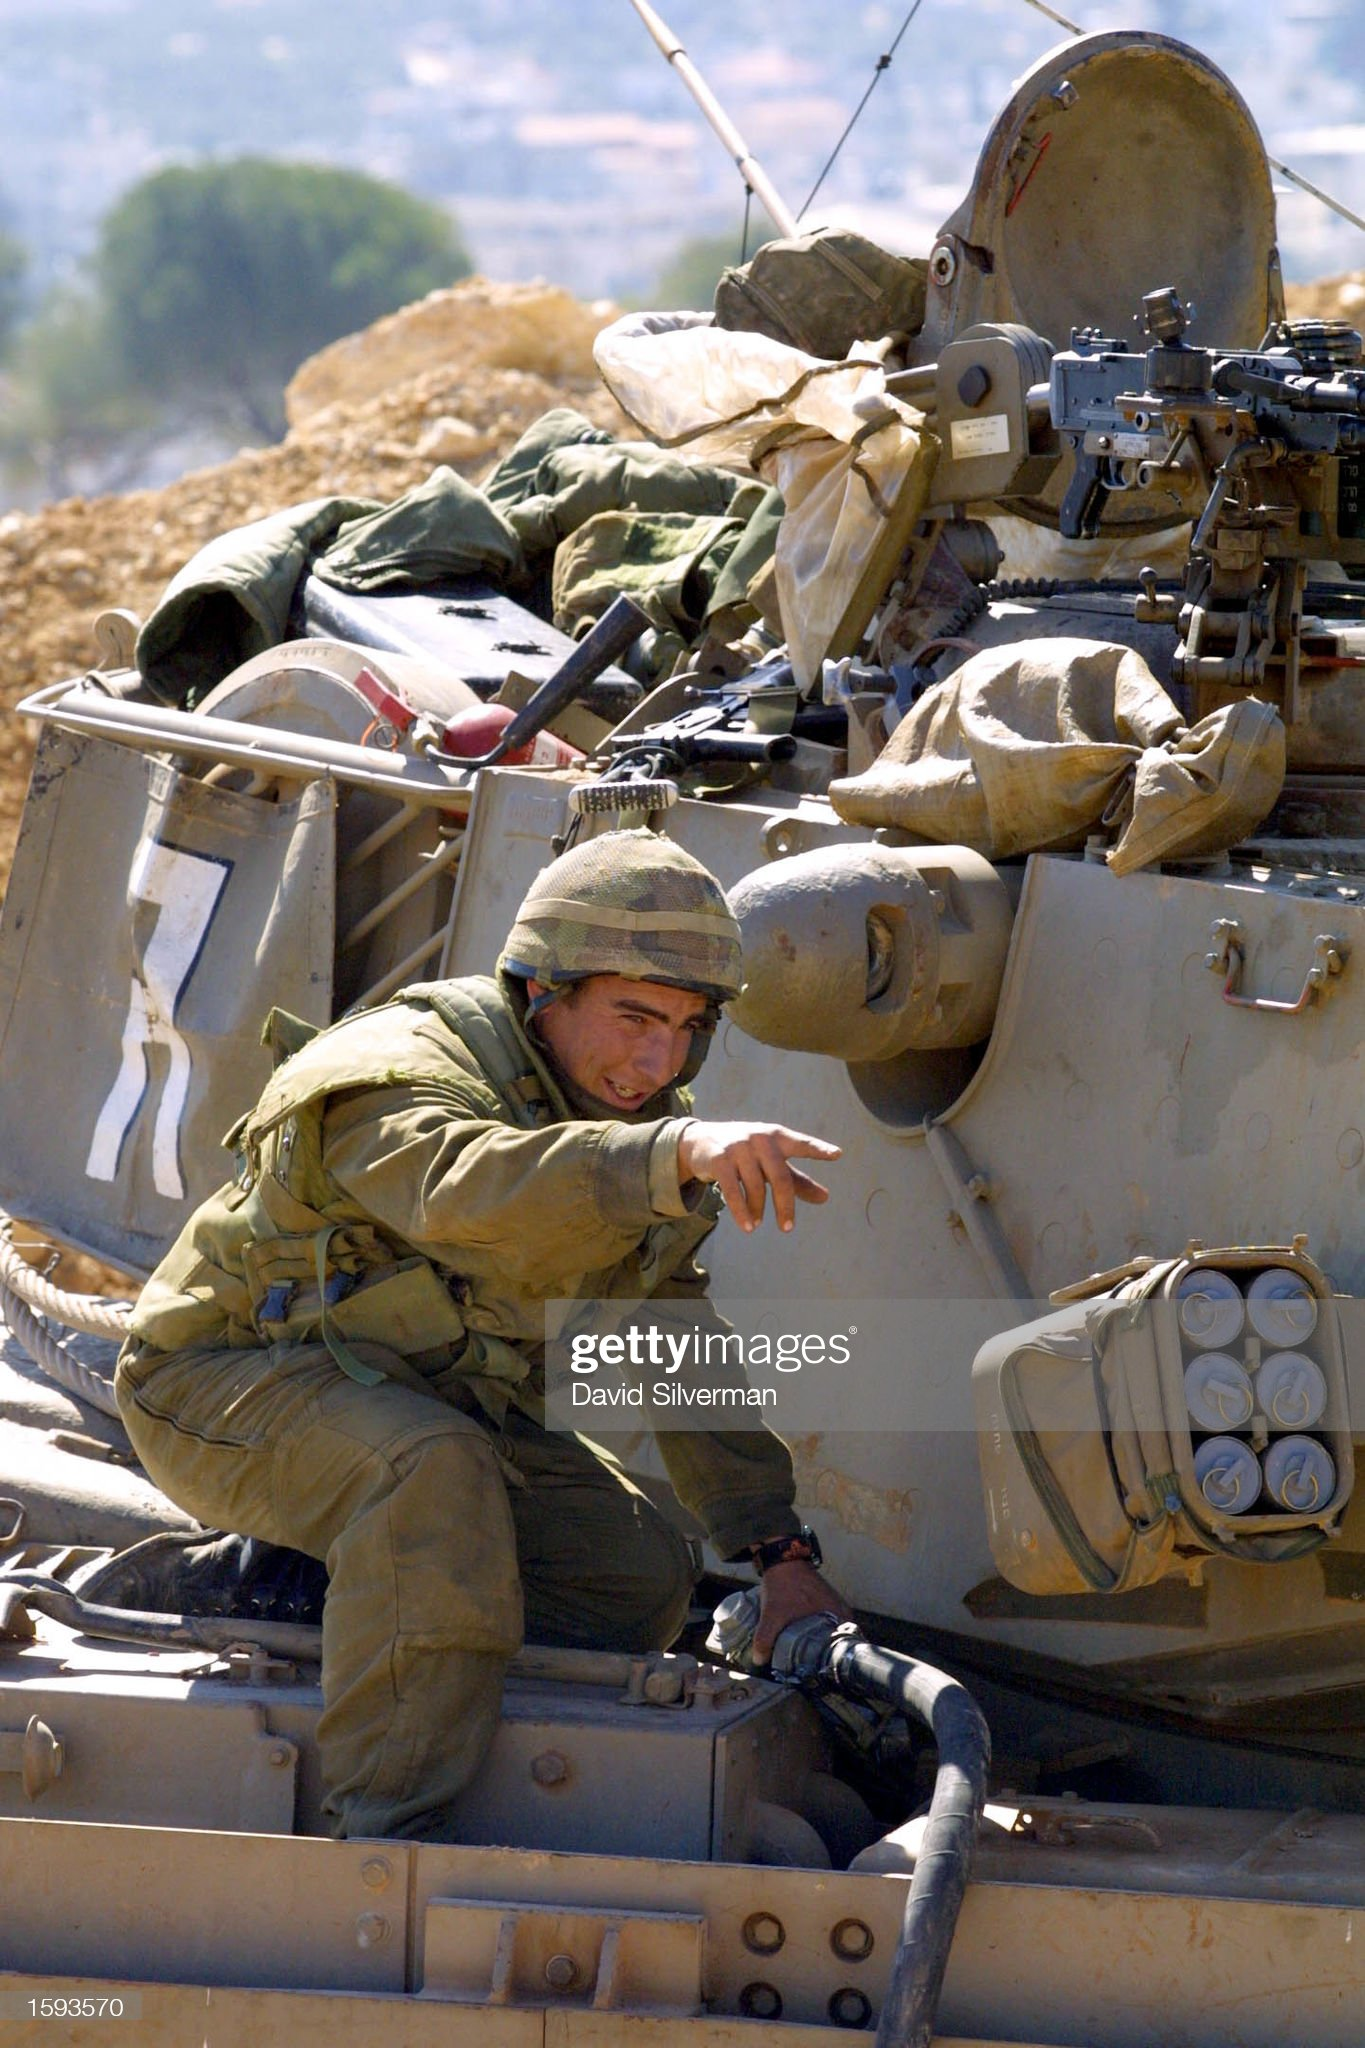 https://media.gettyimages.com/photos/an-israeli-soldier-refuels-his-tank-february-12-2001-in-jerusalem-picture-id1593570?s=2048x2048